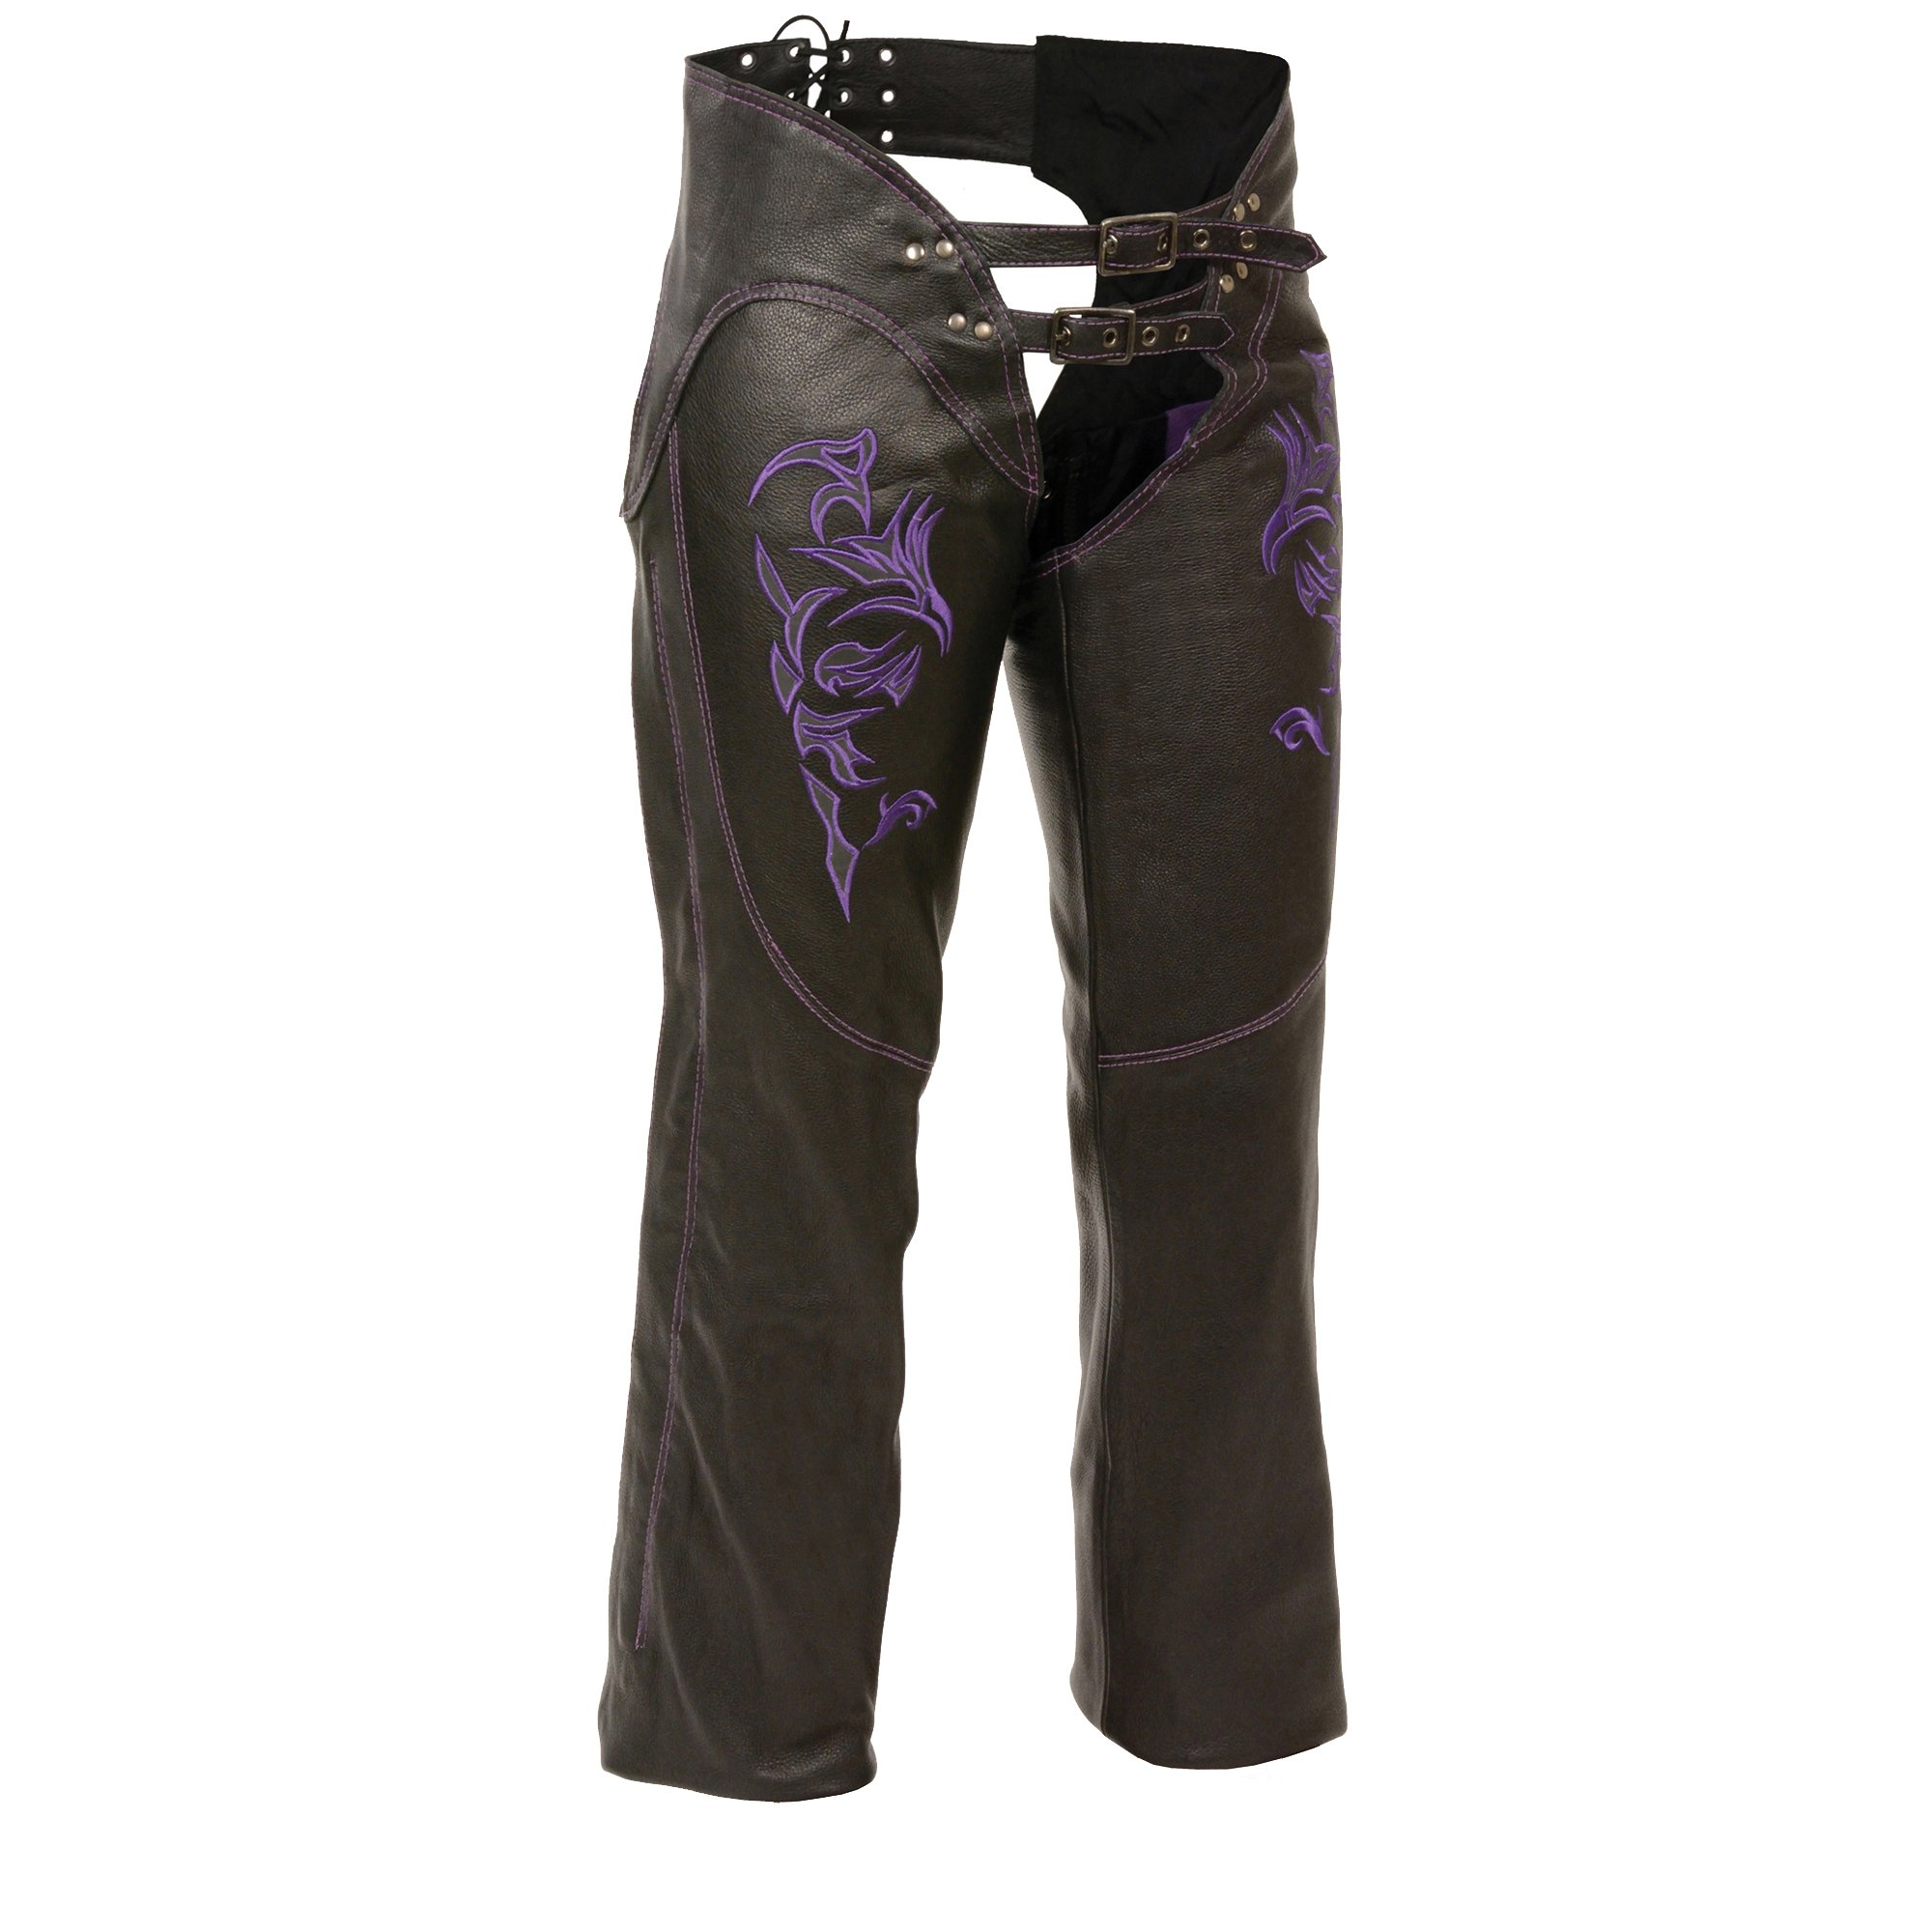 Milwaukee ML1187-BLK/PUR-MD Women's Leather Chaps, Medium, Black/Purple by Milwaukee